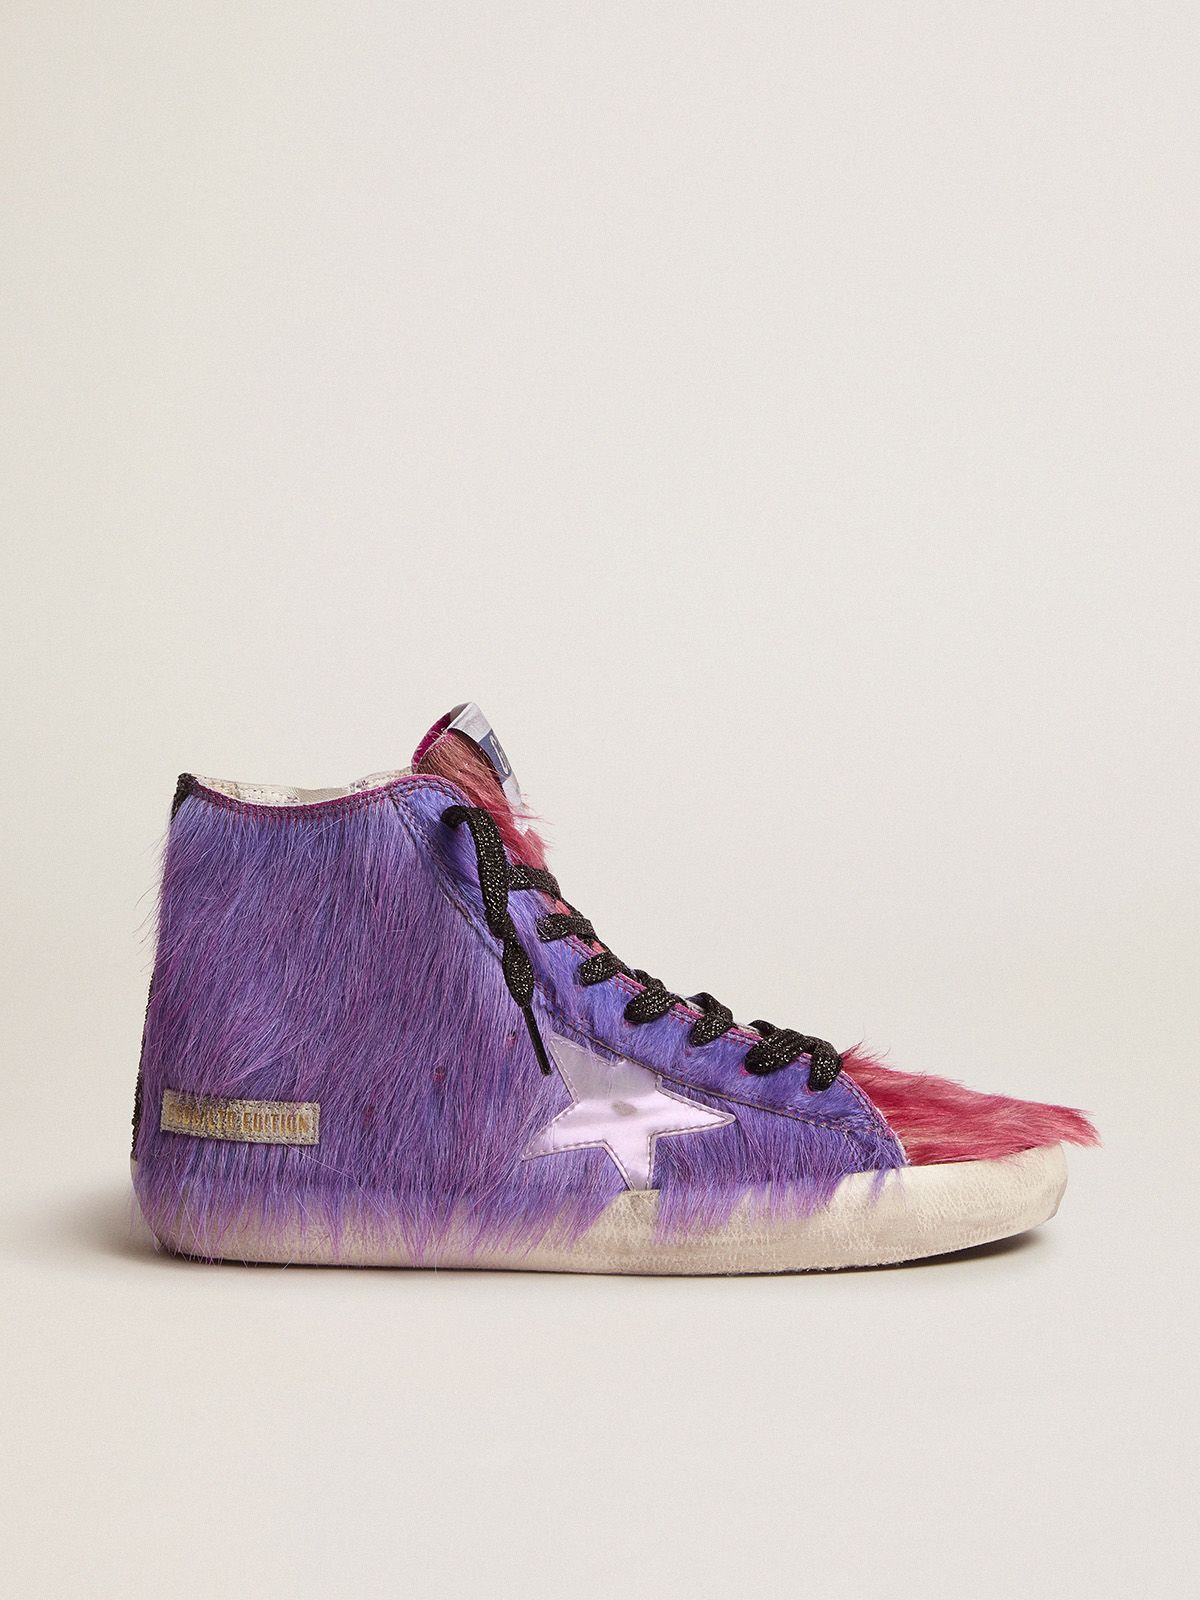 Women's Limited Edition lilac and pink pony skin Francy sneakers